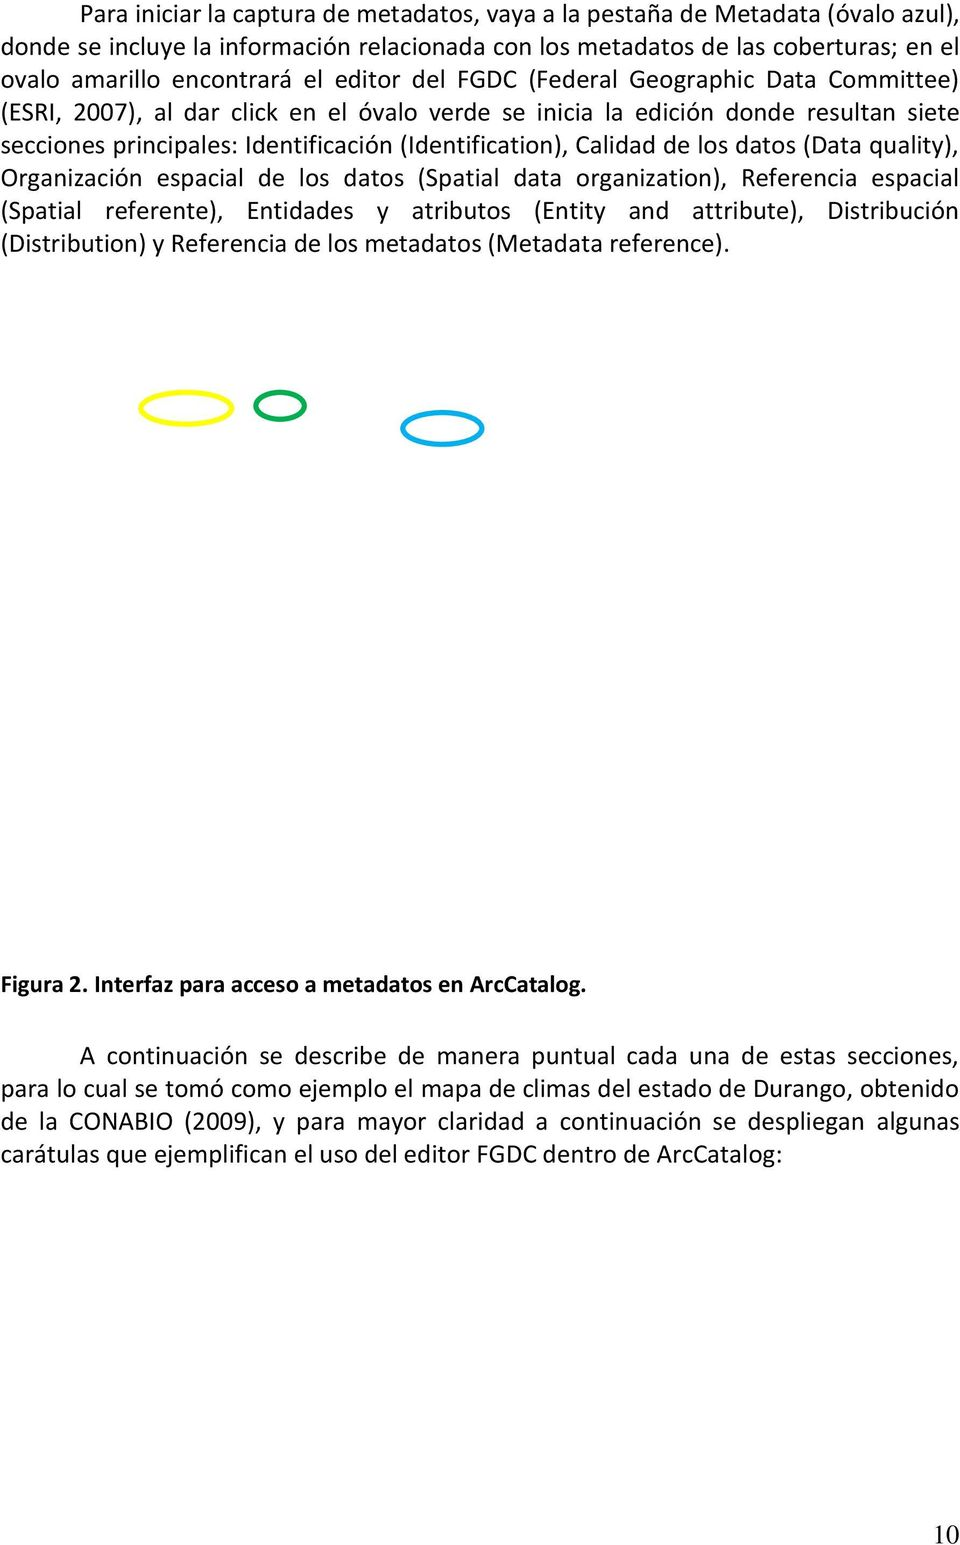 Calidad de los datos (Data quality), Organización espacial de los datos (Spatial data organization), Referencia espacial (Spatial referente), Entidades y atributos (Entity and attribute),